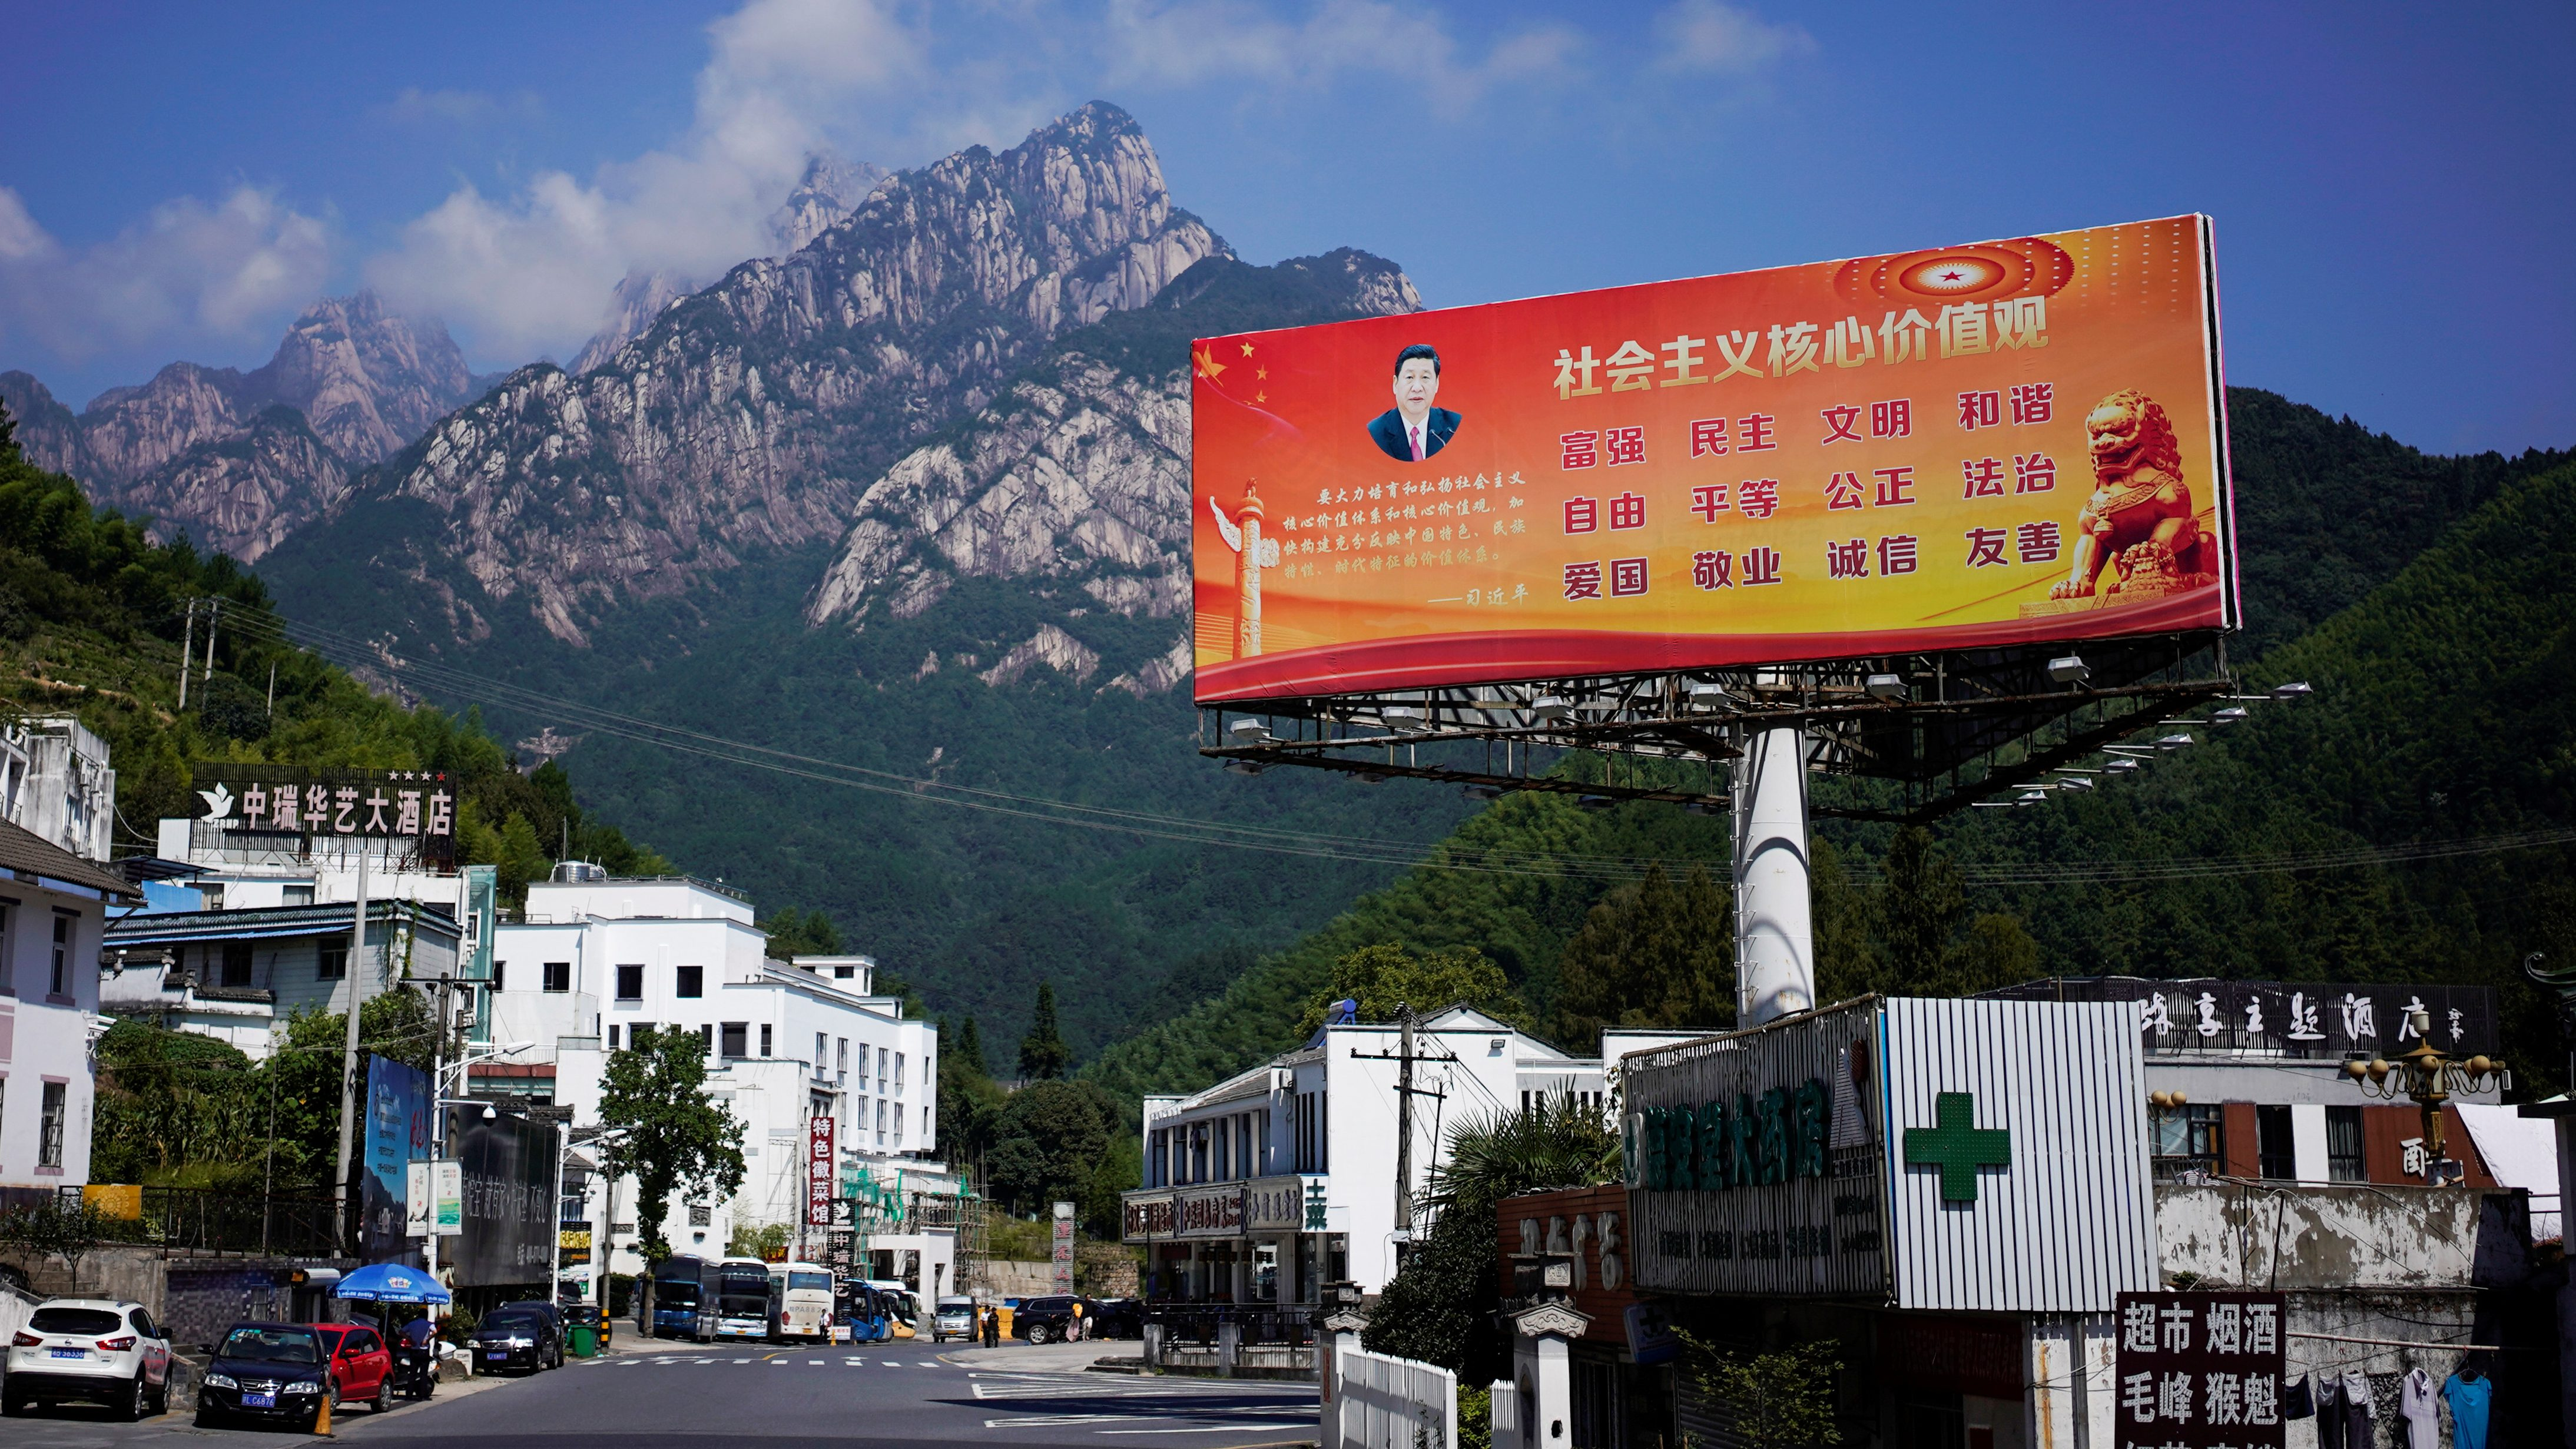 """A poster with a portrait of Chinese President Xi Jinping overlooks a street in Huangshan, Anhui province, China, September 16, 2017. The slogan reads: """"Core Socialist Values: prosperity, democracy, civility, and harmony; freedom, equality, justice, rule of law; patriotism, dedication, integrity and friendship.""""  Picture taken September 16, 2017.  REUTERS/Aly Song - RC1A87FE6EA0"""